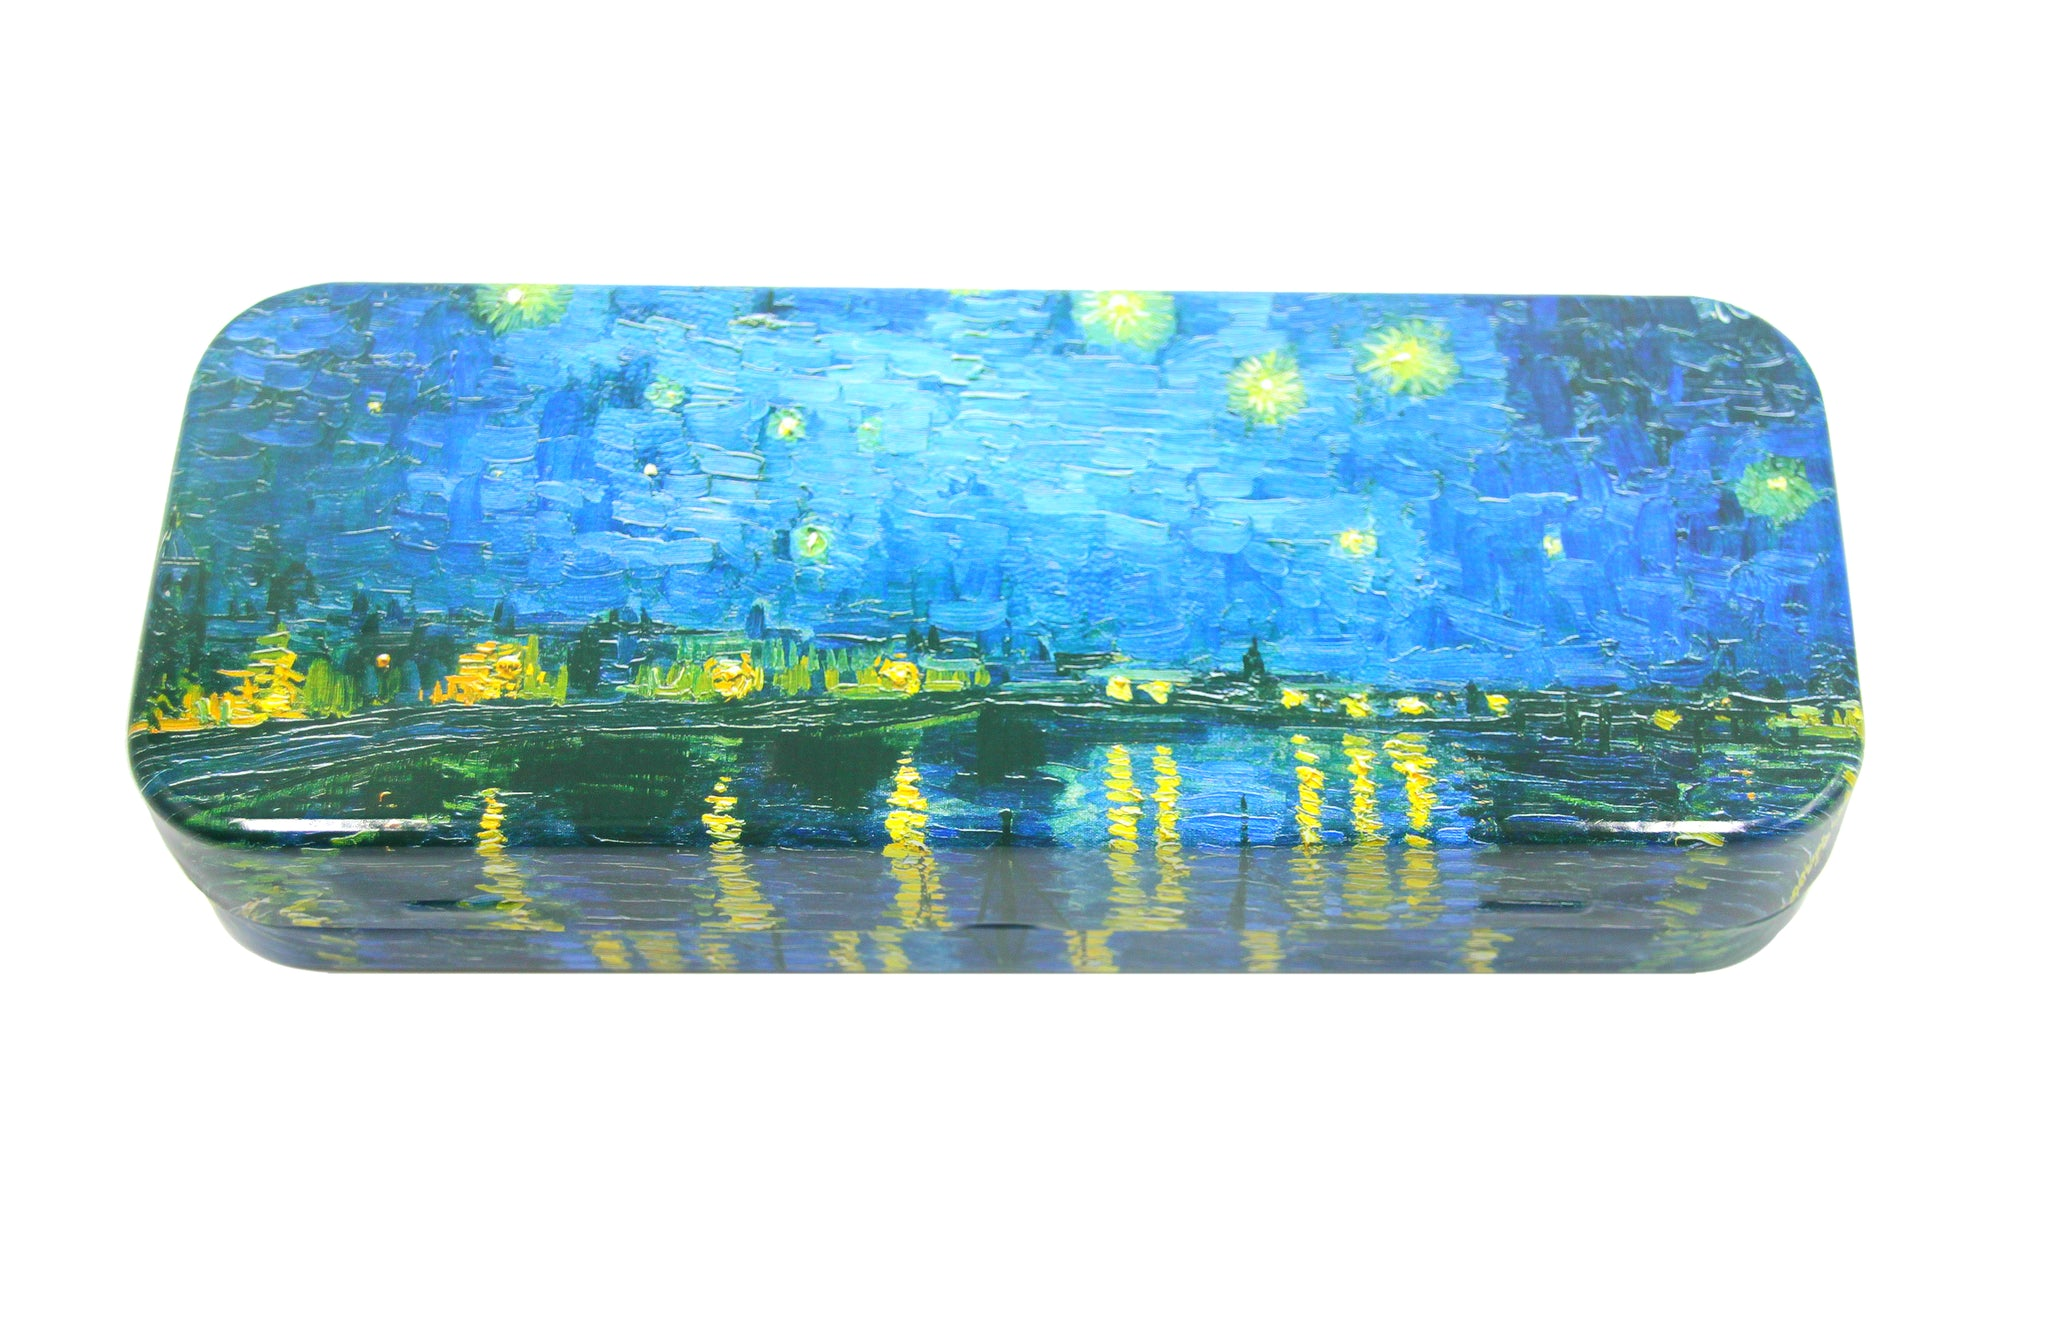 DAHO Mega Tin Pencil/Storage Box with World Famous Arts for Office, Home, Makeup, Accessories Storage (Starry Night Over The Rhone)